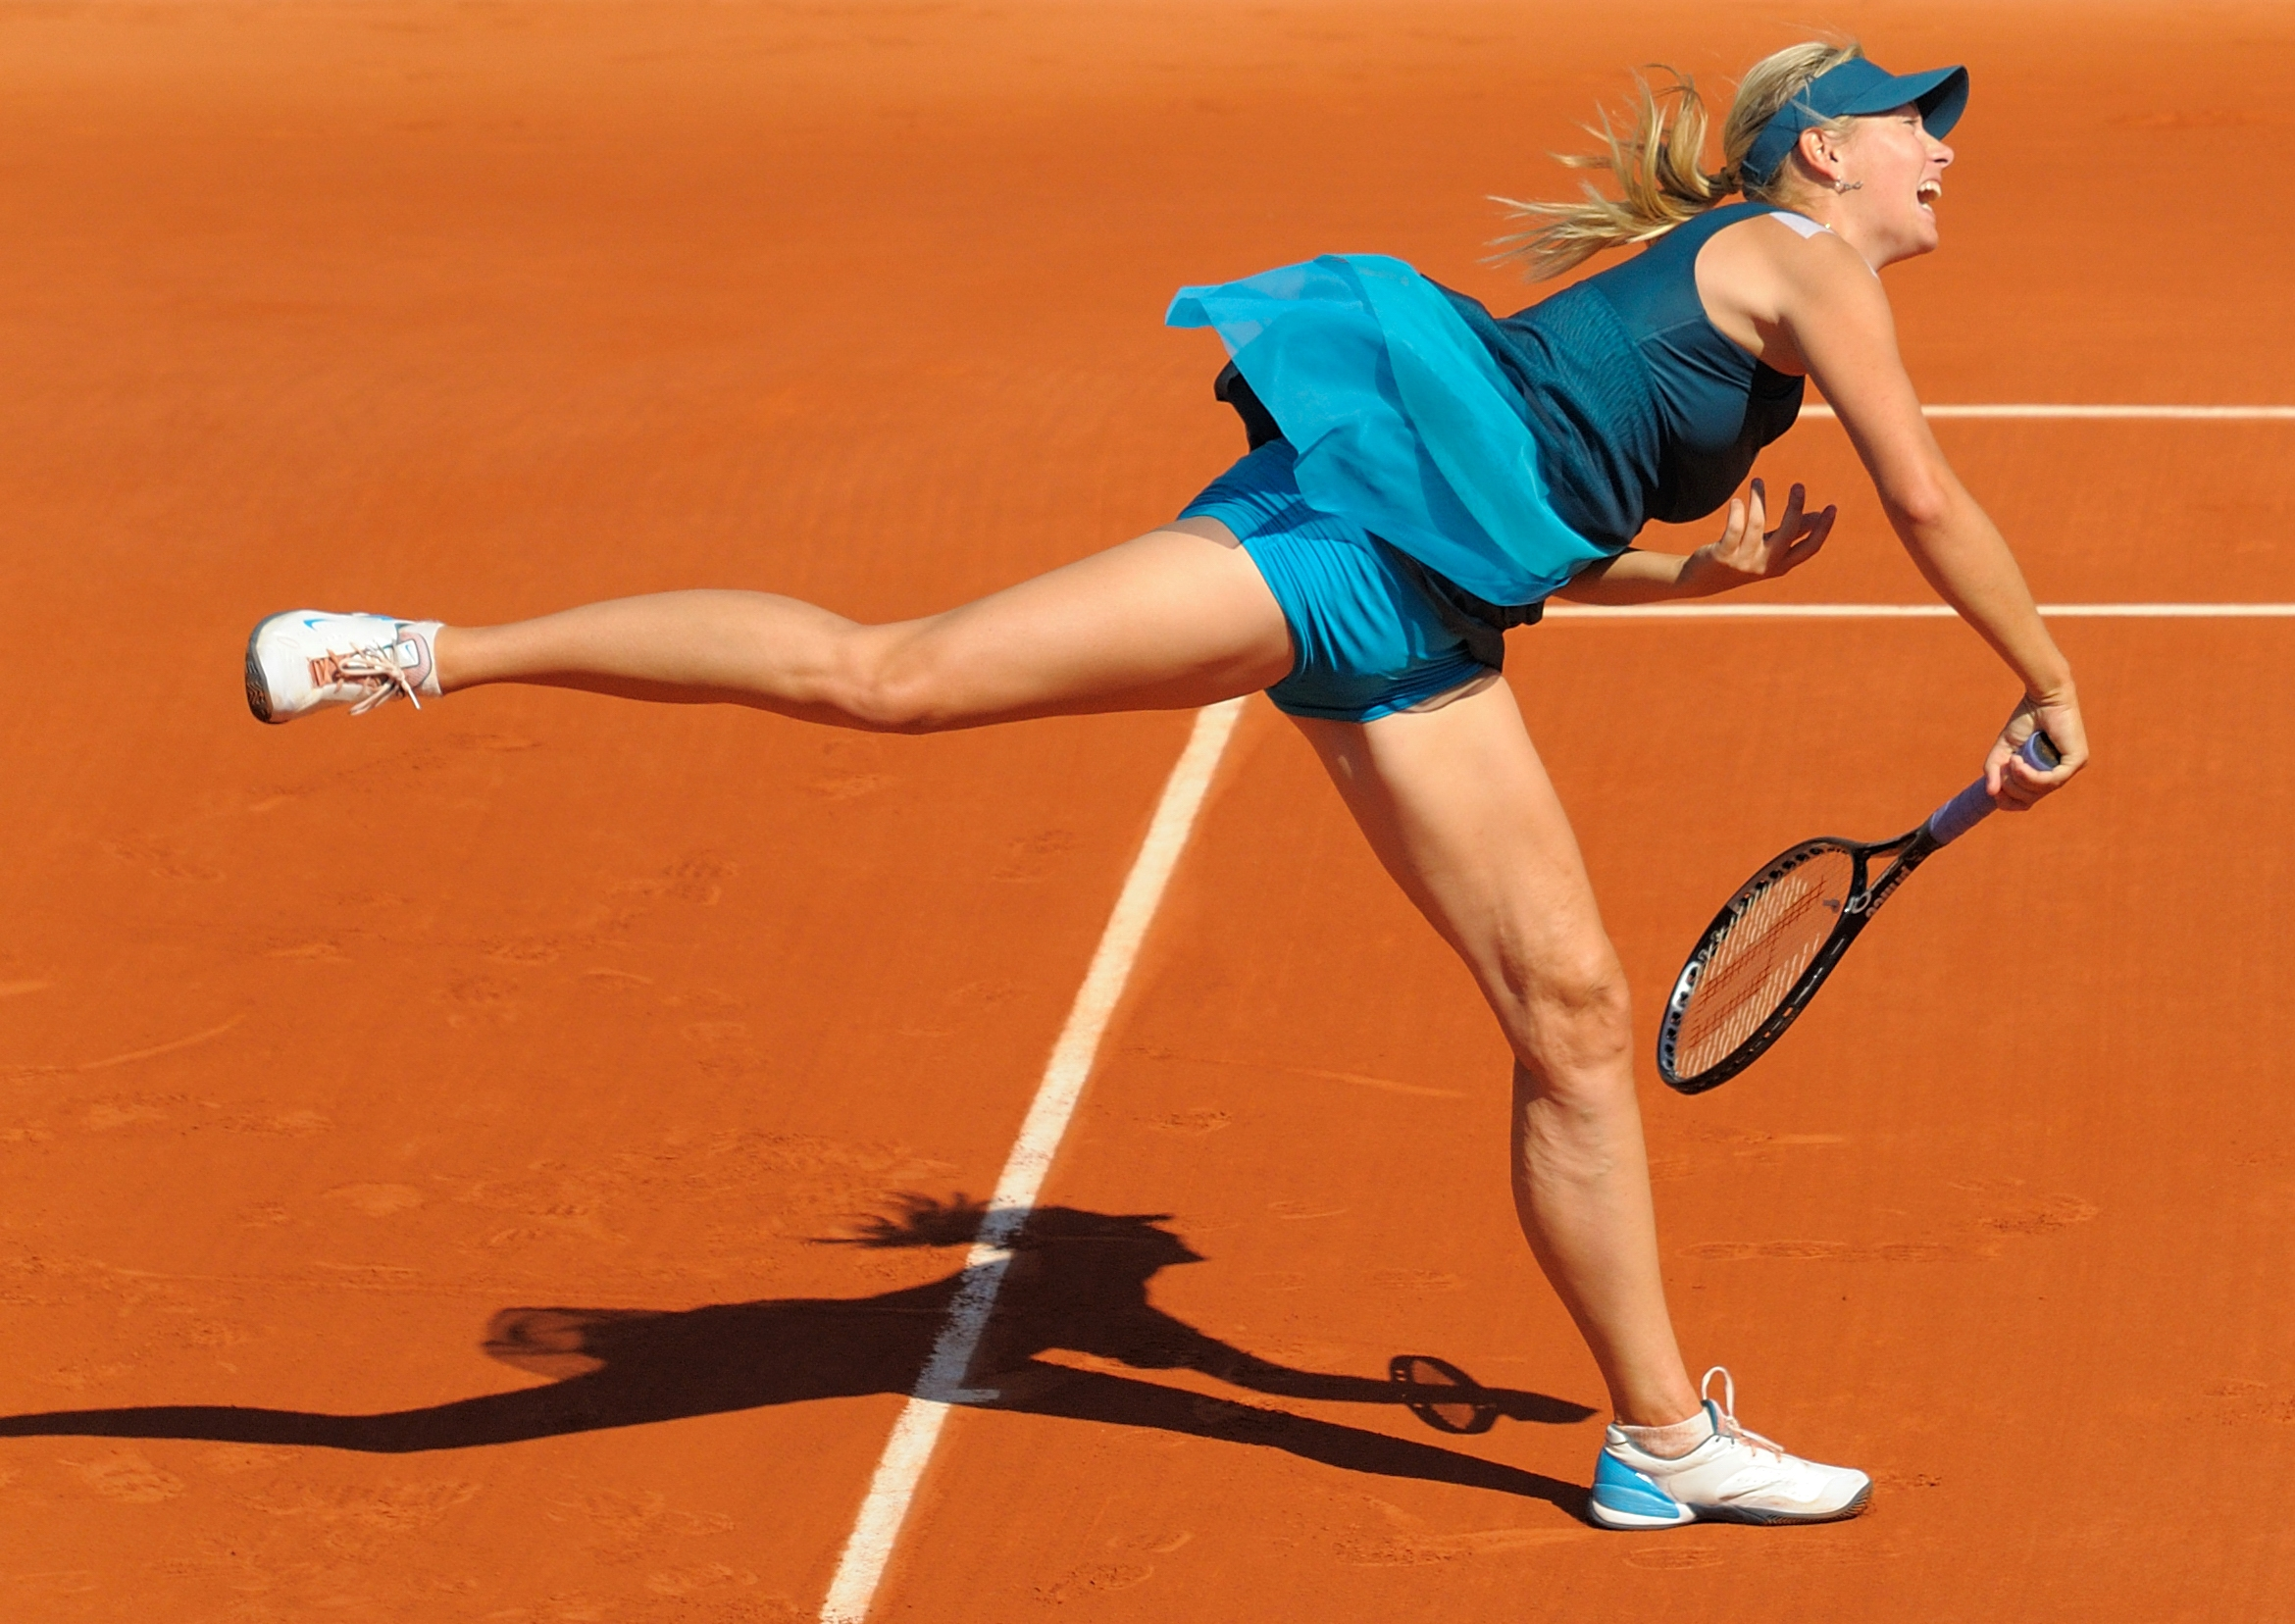 Tennis player Maria Sharapova has said she was unaware meldonium was part of the 2016 WADA banned substance list. She received a two-year ban from the International Tennis Federation for using the drug. By Misty, Sydney, Australia - Maria Sharapova and her shadow edited from en:File:Sharapova Roland Garros 2009 3.jpg, CC BY-SA 3.0, https://commons.wikimedia.org/w/index.php?curid=19858734